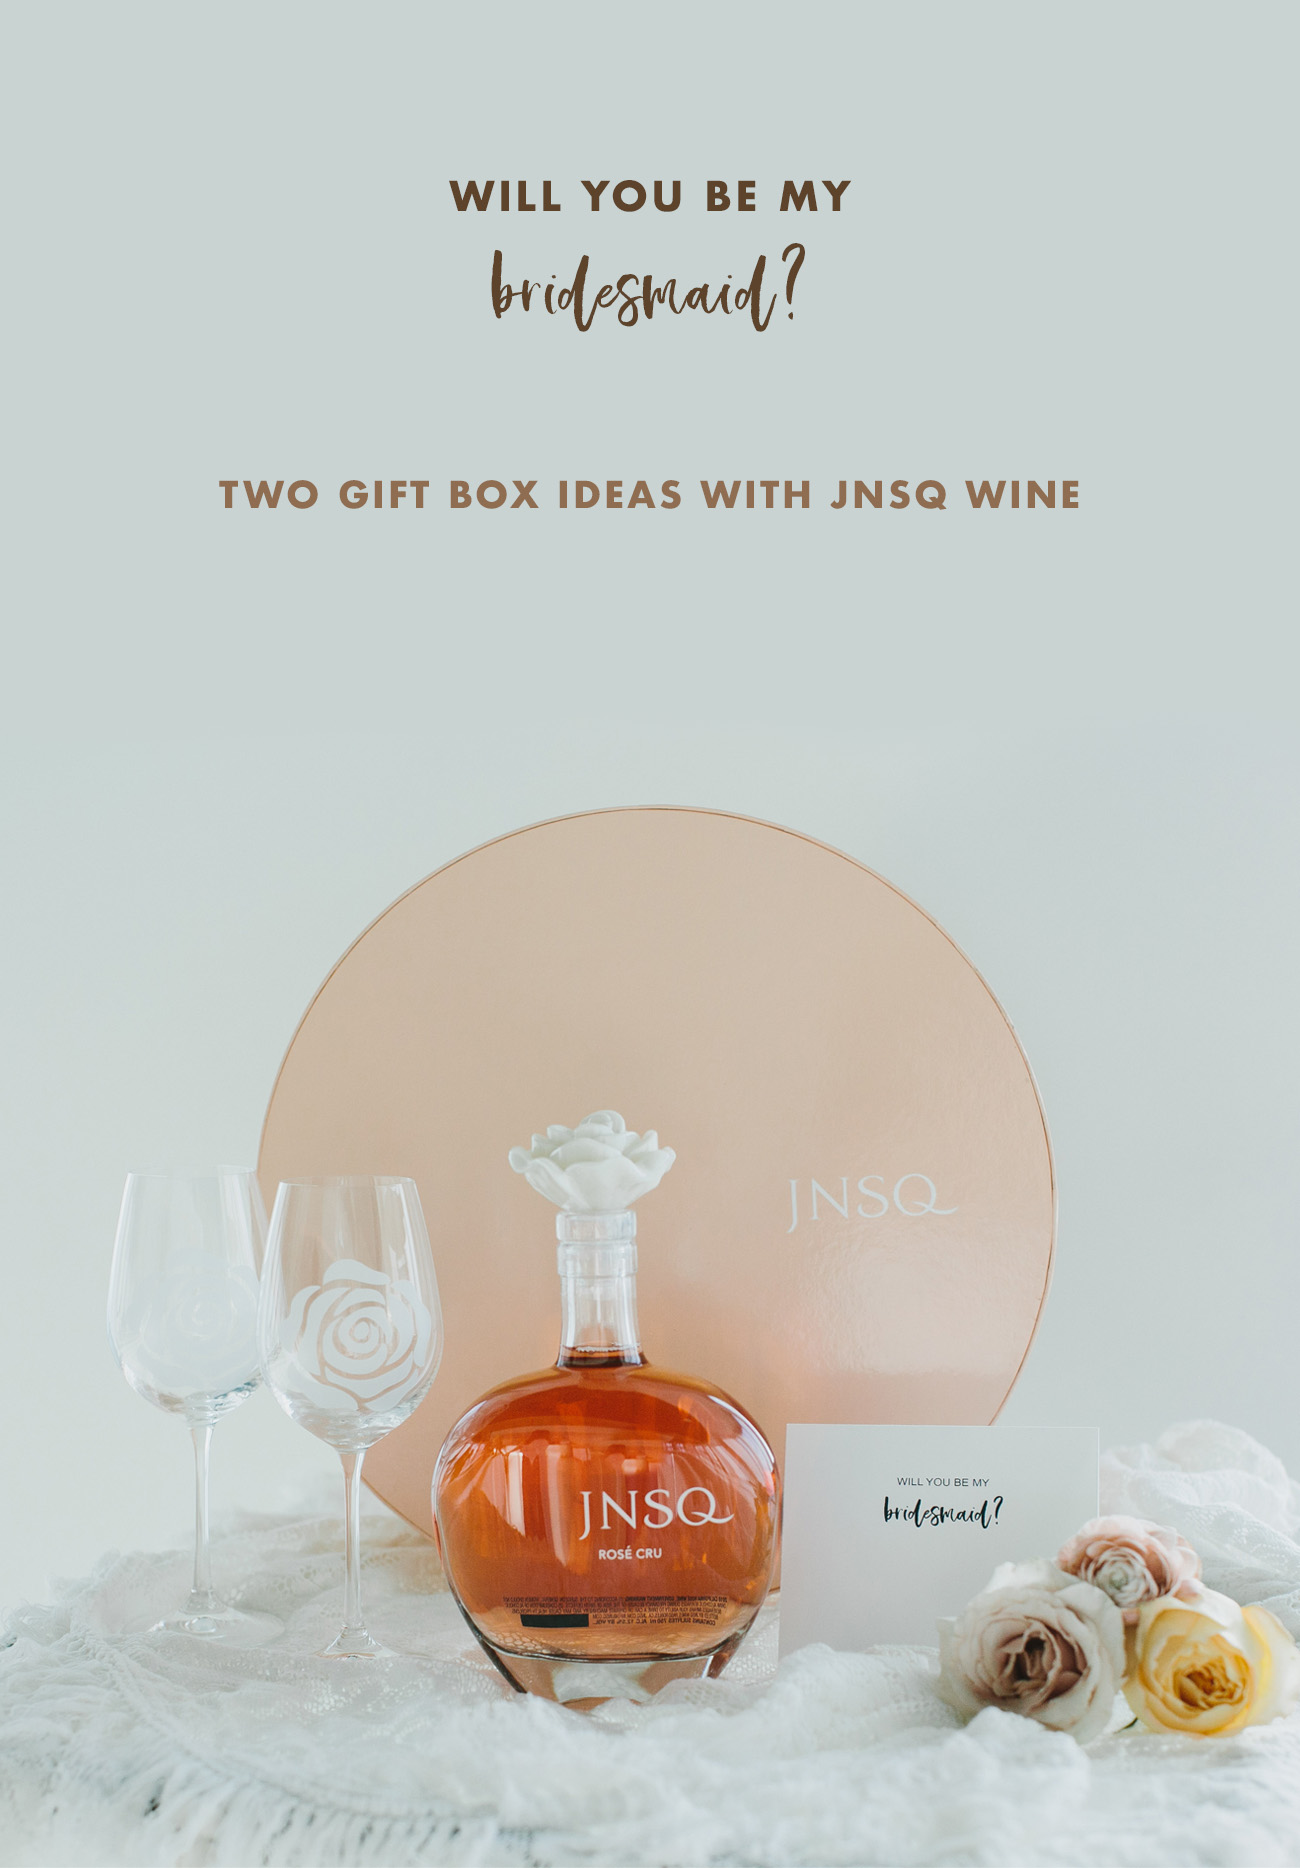 Will You Be My Bridesmaid? Gift Box with JNSQ Wine